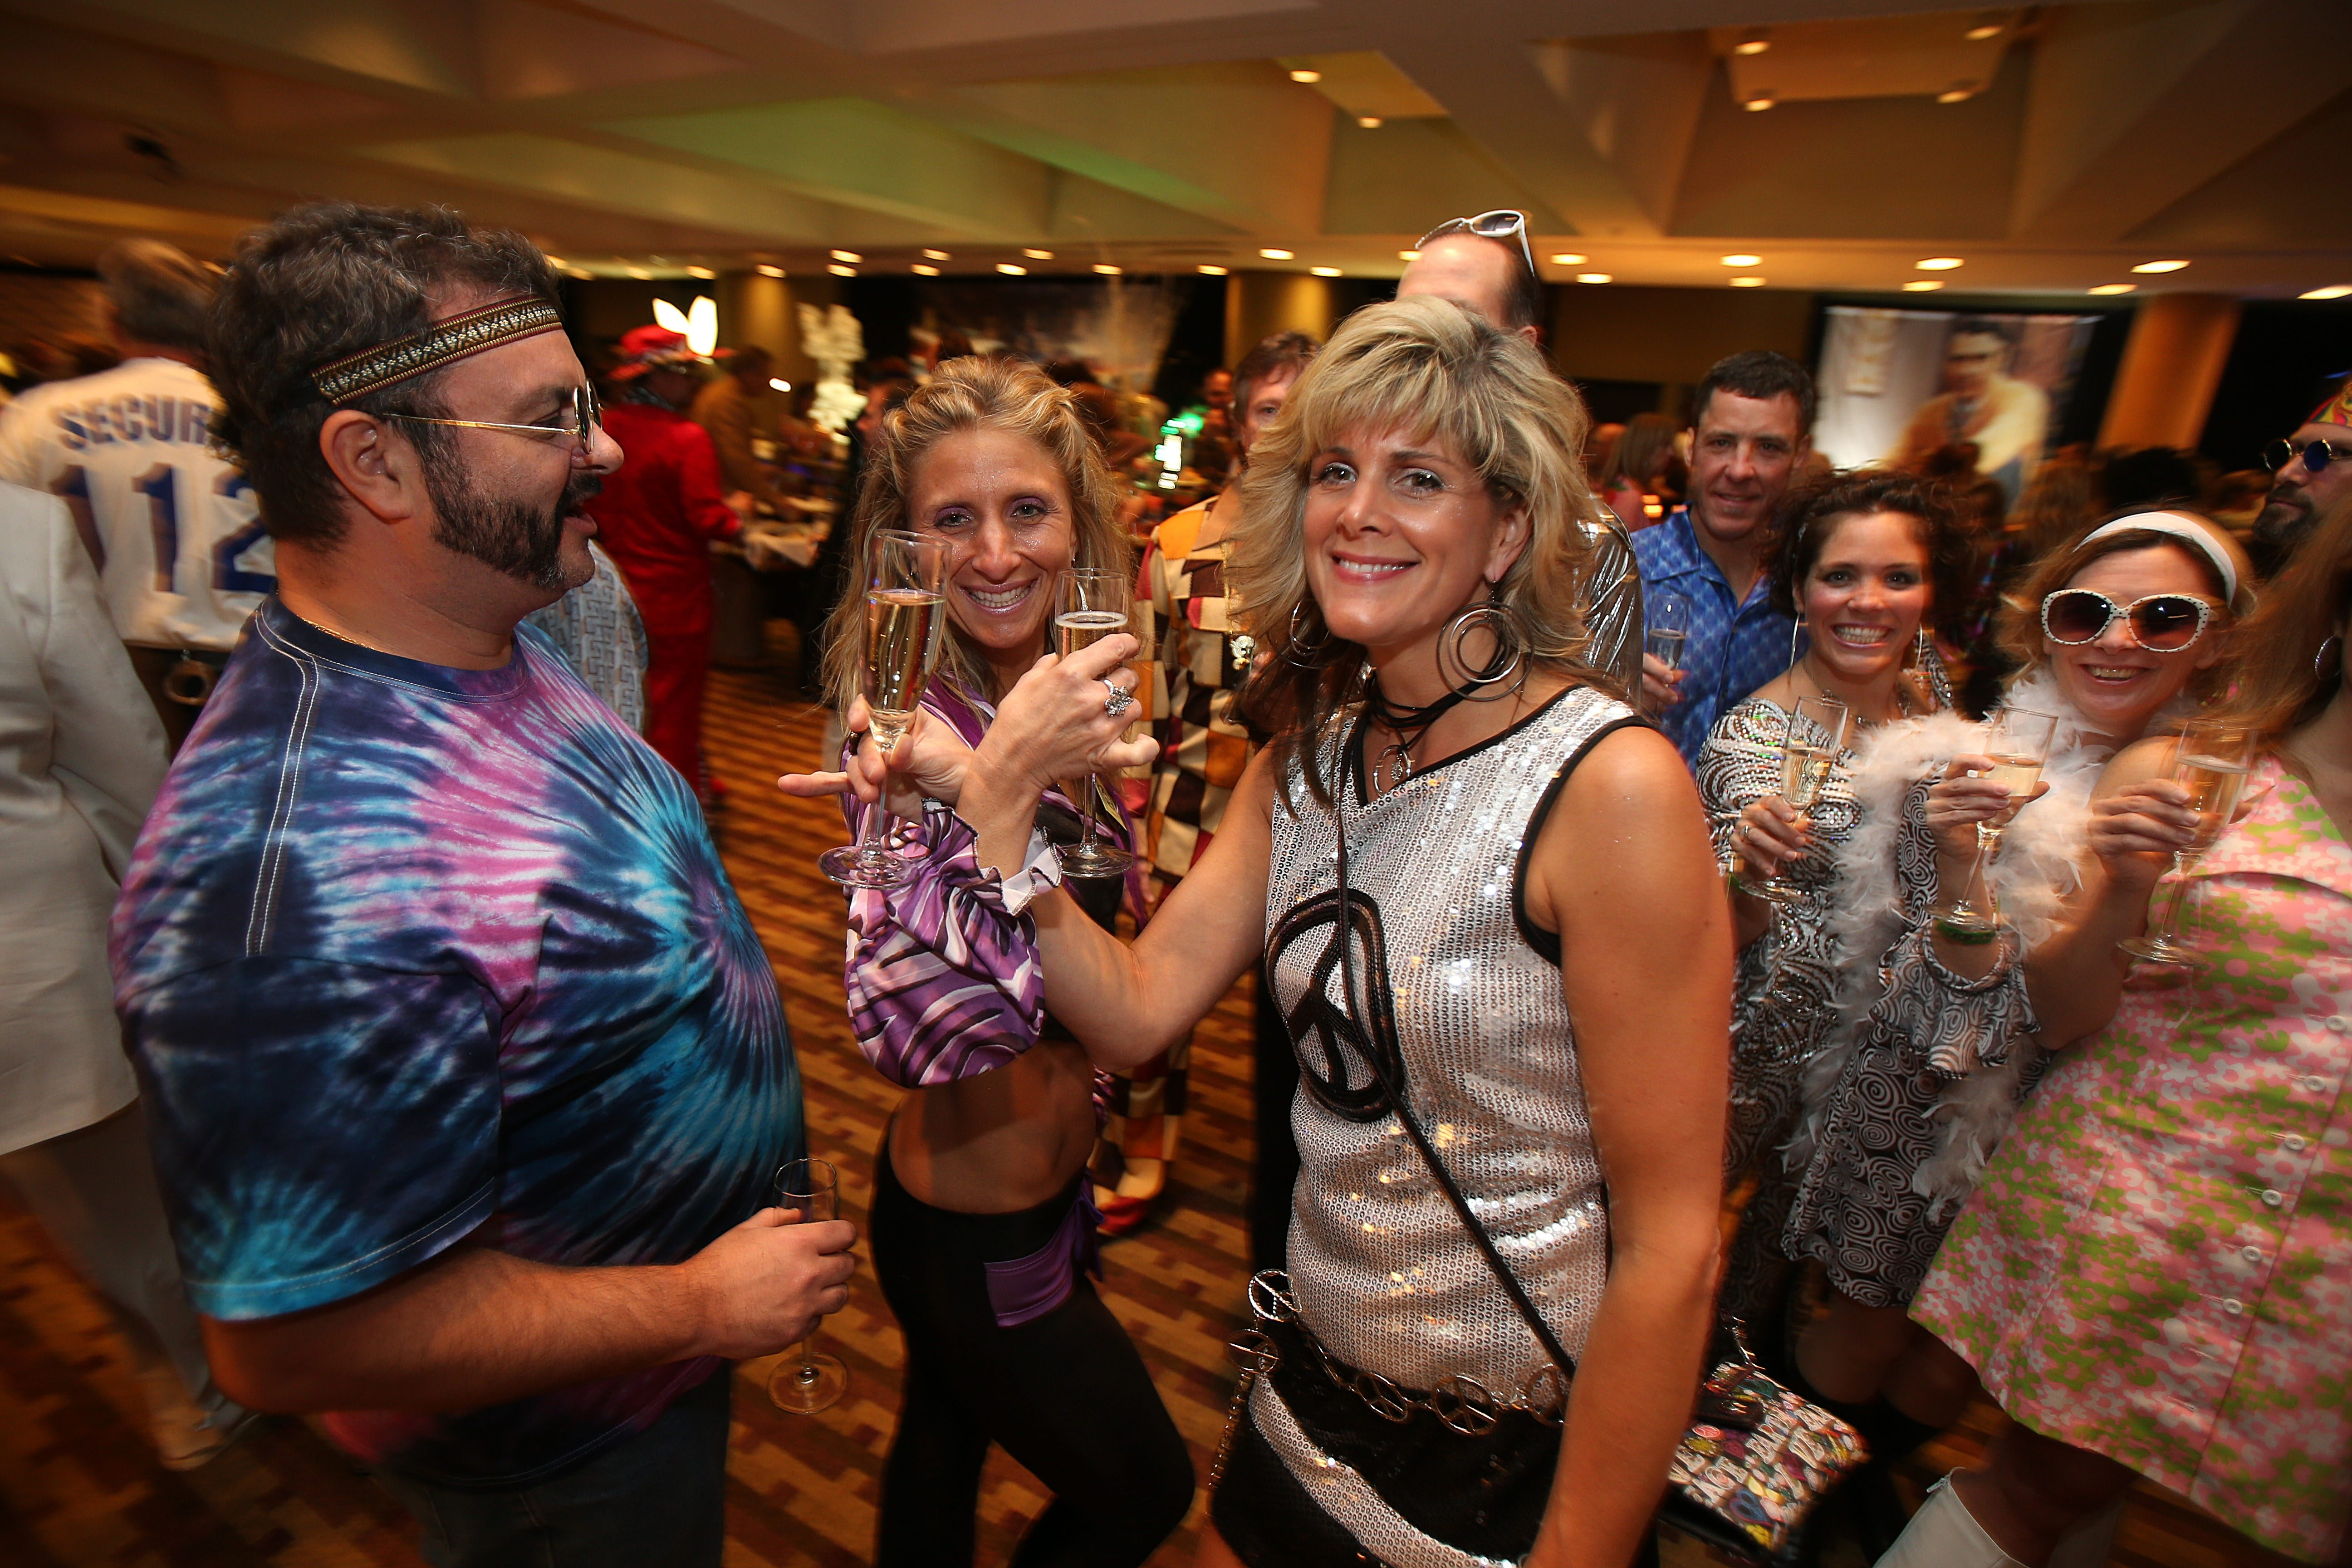 From left, Shawn Shelton, Colleen Shelton and Jodi Ross, all of Clarence Center, are primed for fun at the World's Largest Disco, at the Buffalo Niagara Convention Center in Buffalo on Saturday.